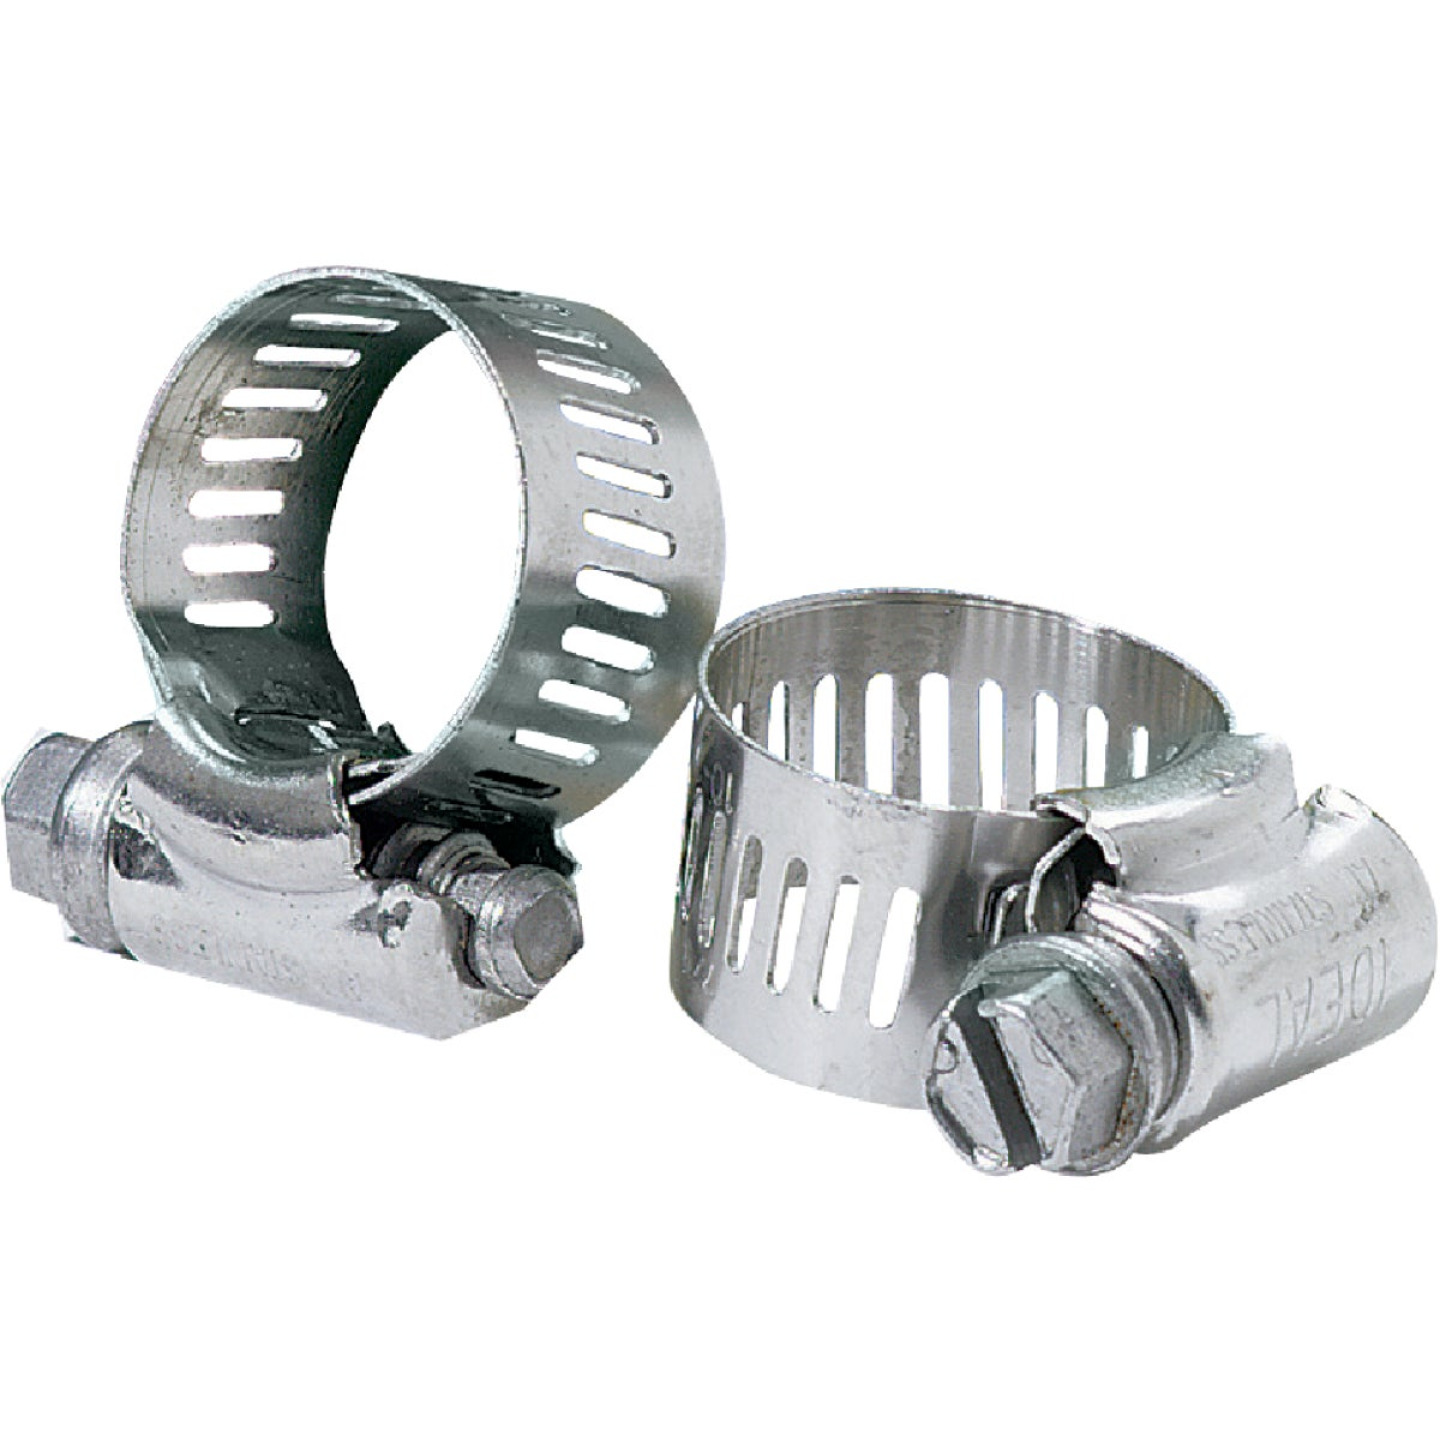 Ideal 1-1/4 In. - 2-1/4 In. 67 All Stainless Steel Hose Clamp Image 1